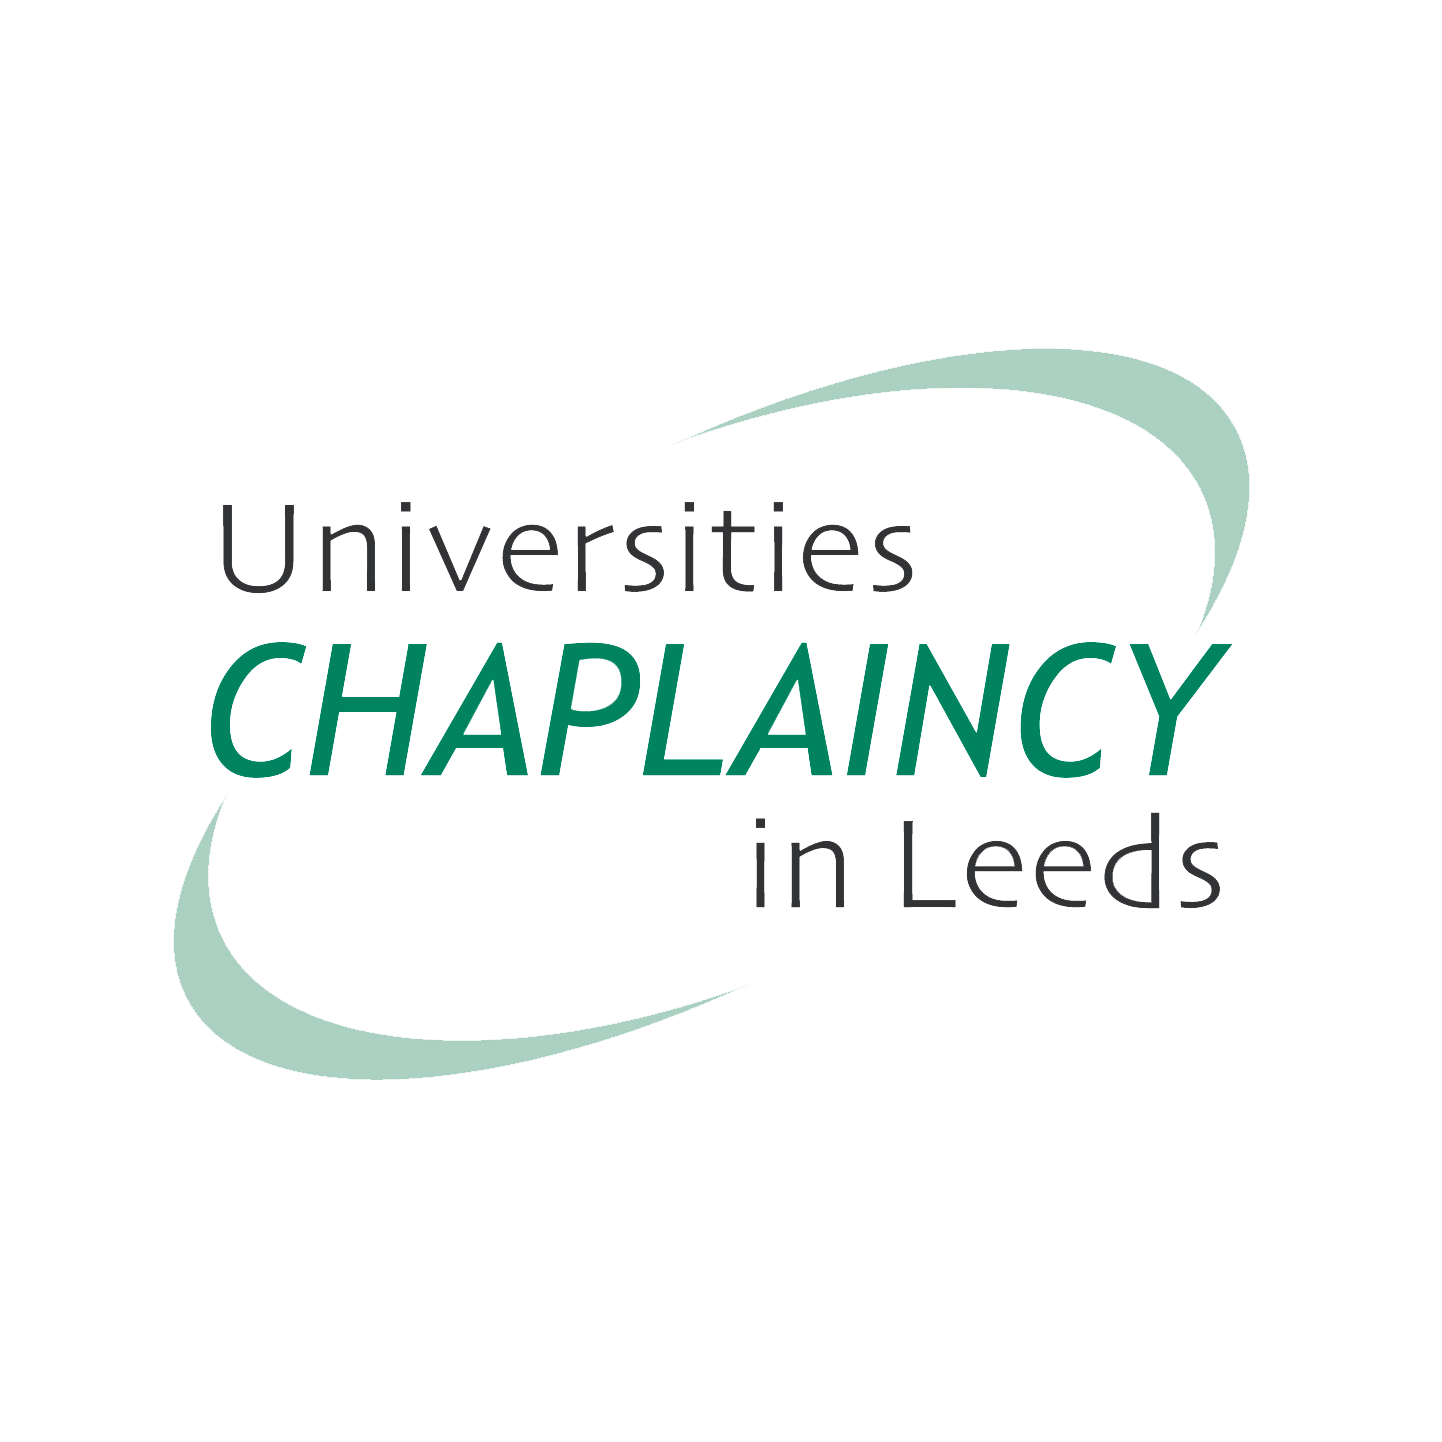 Universities Chaplaincy Leeds